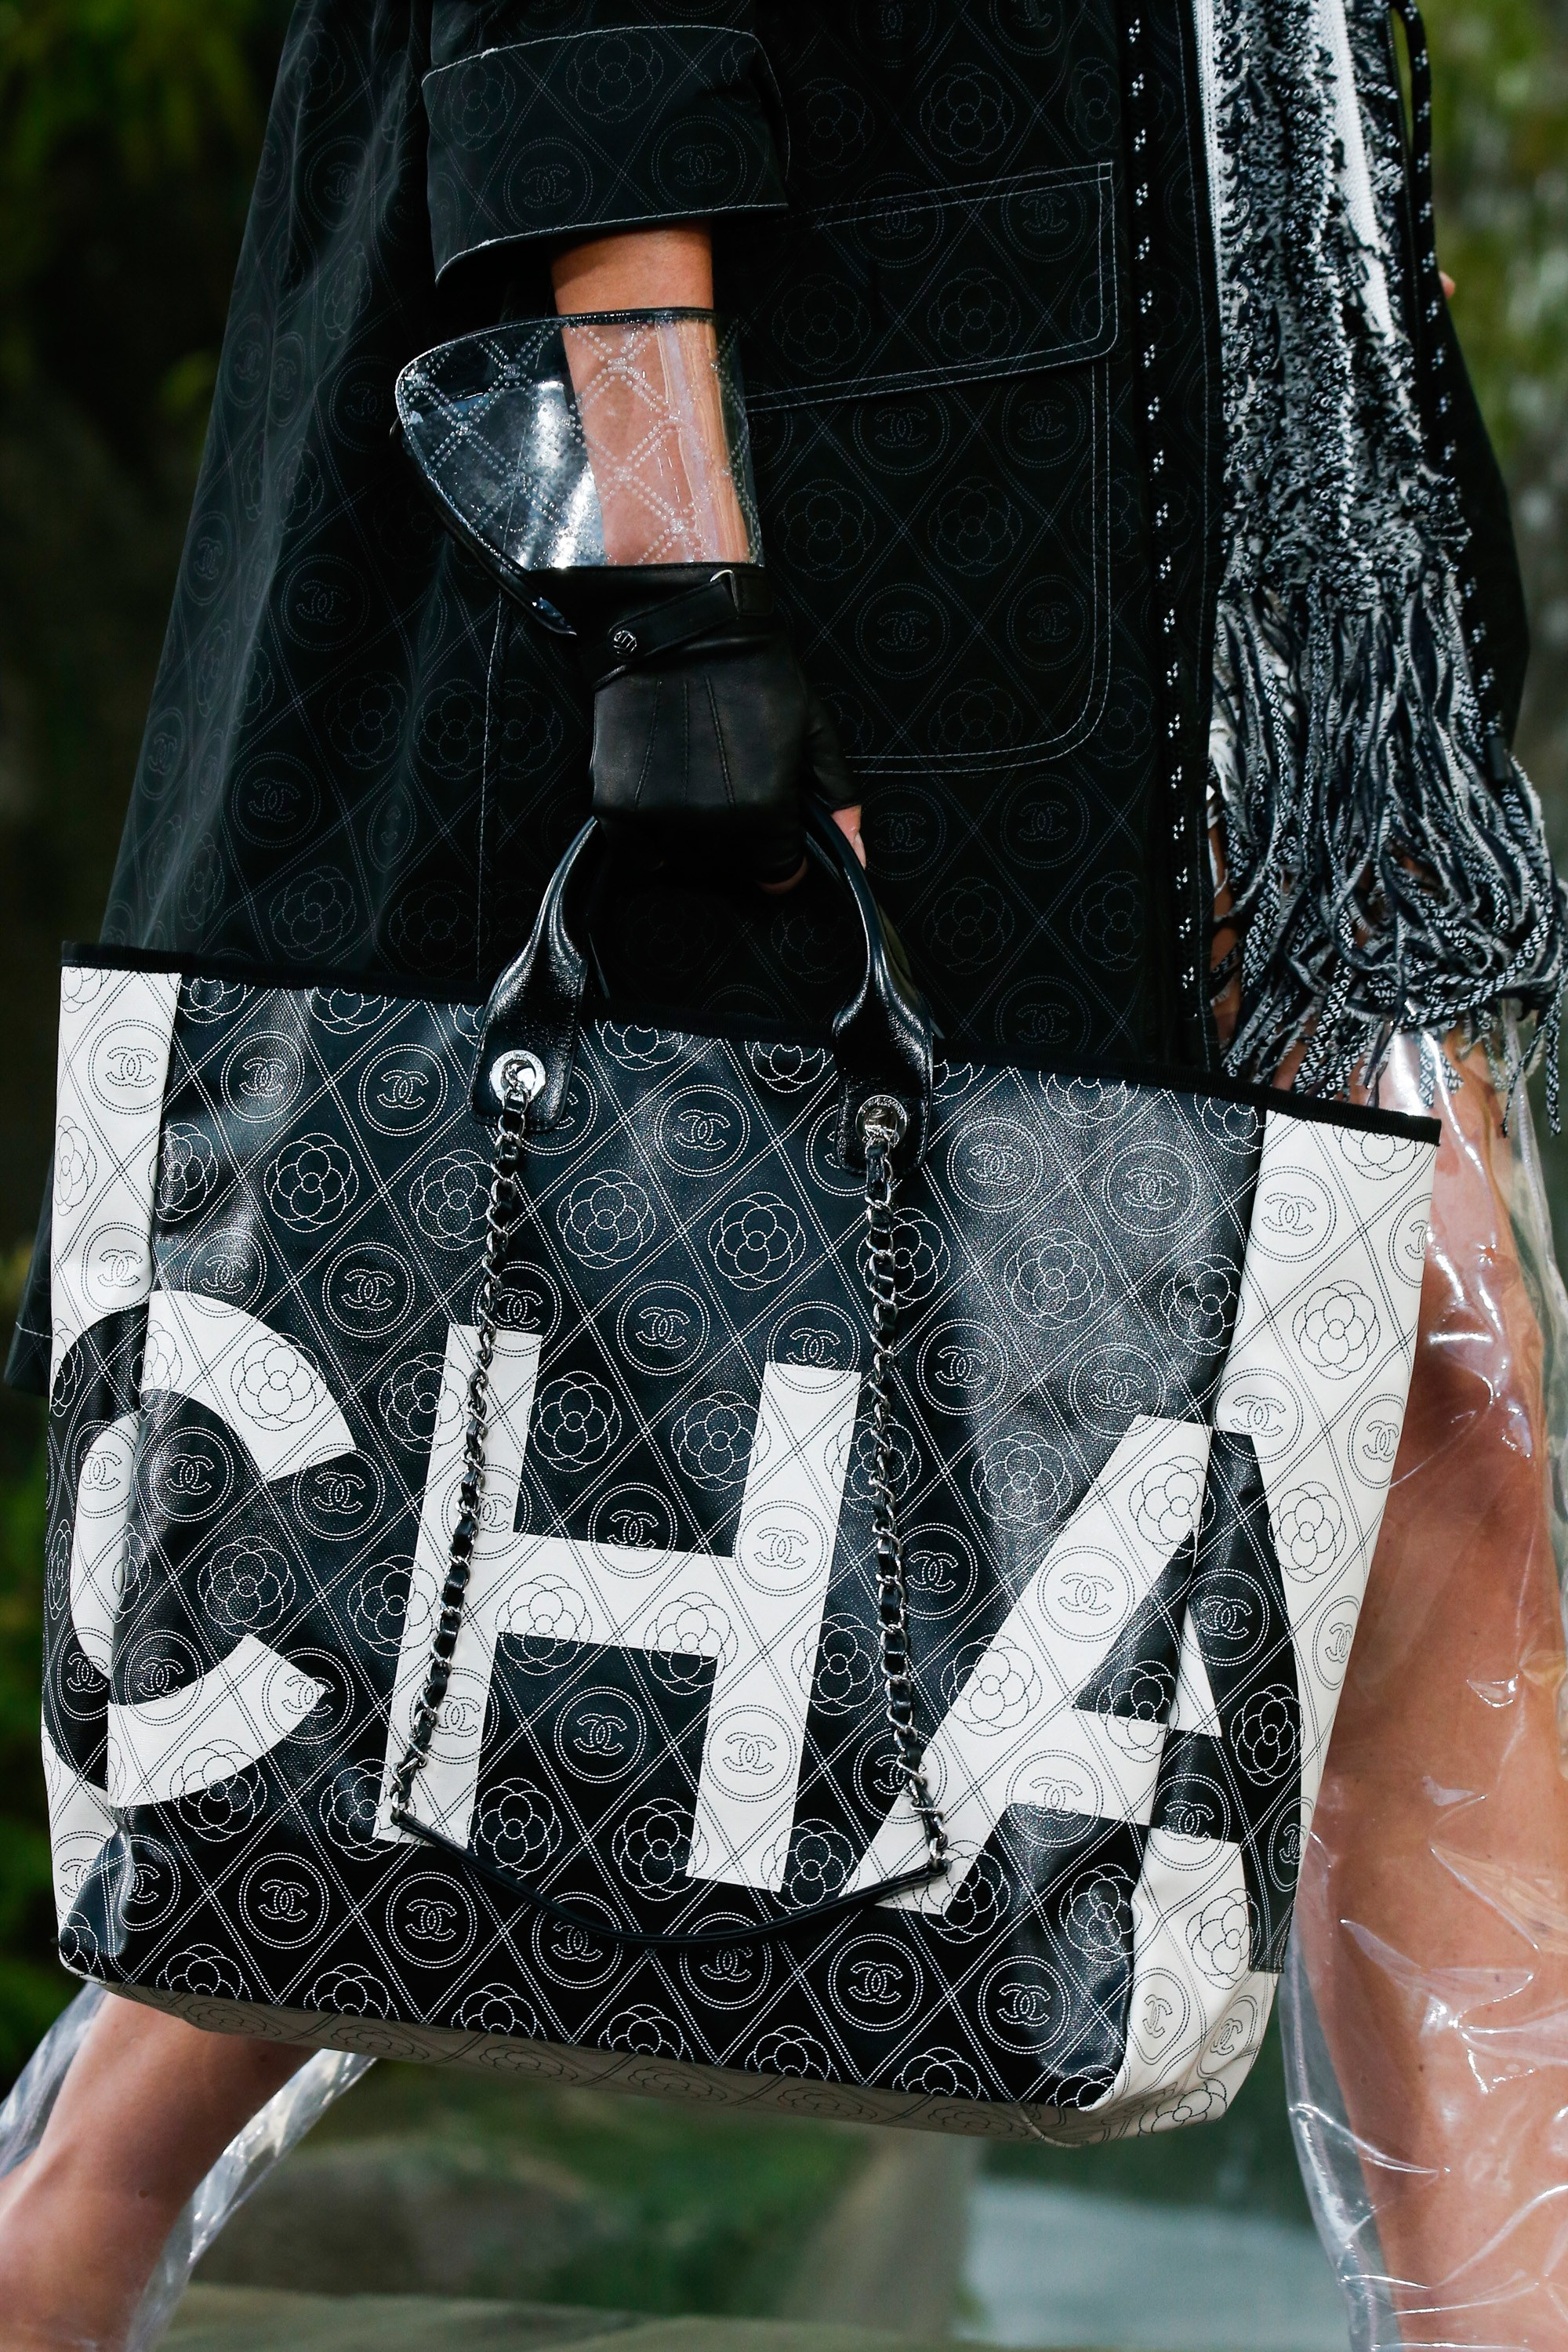 Chanel Black White Logo Embroidered Tote Bag - Spring 2018 6cef34023132